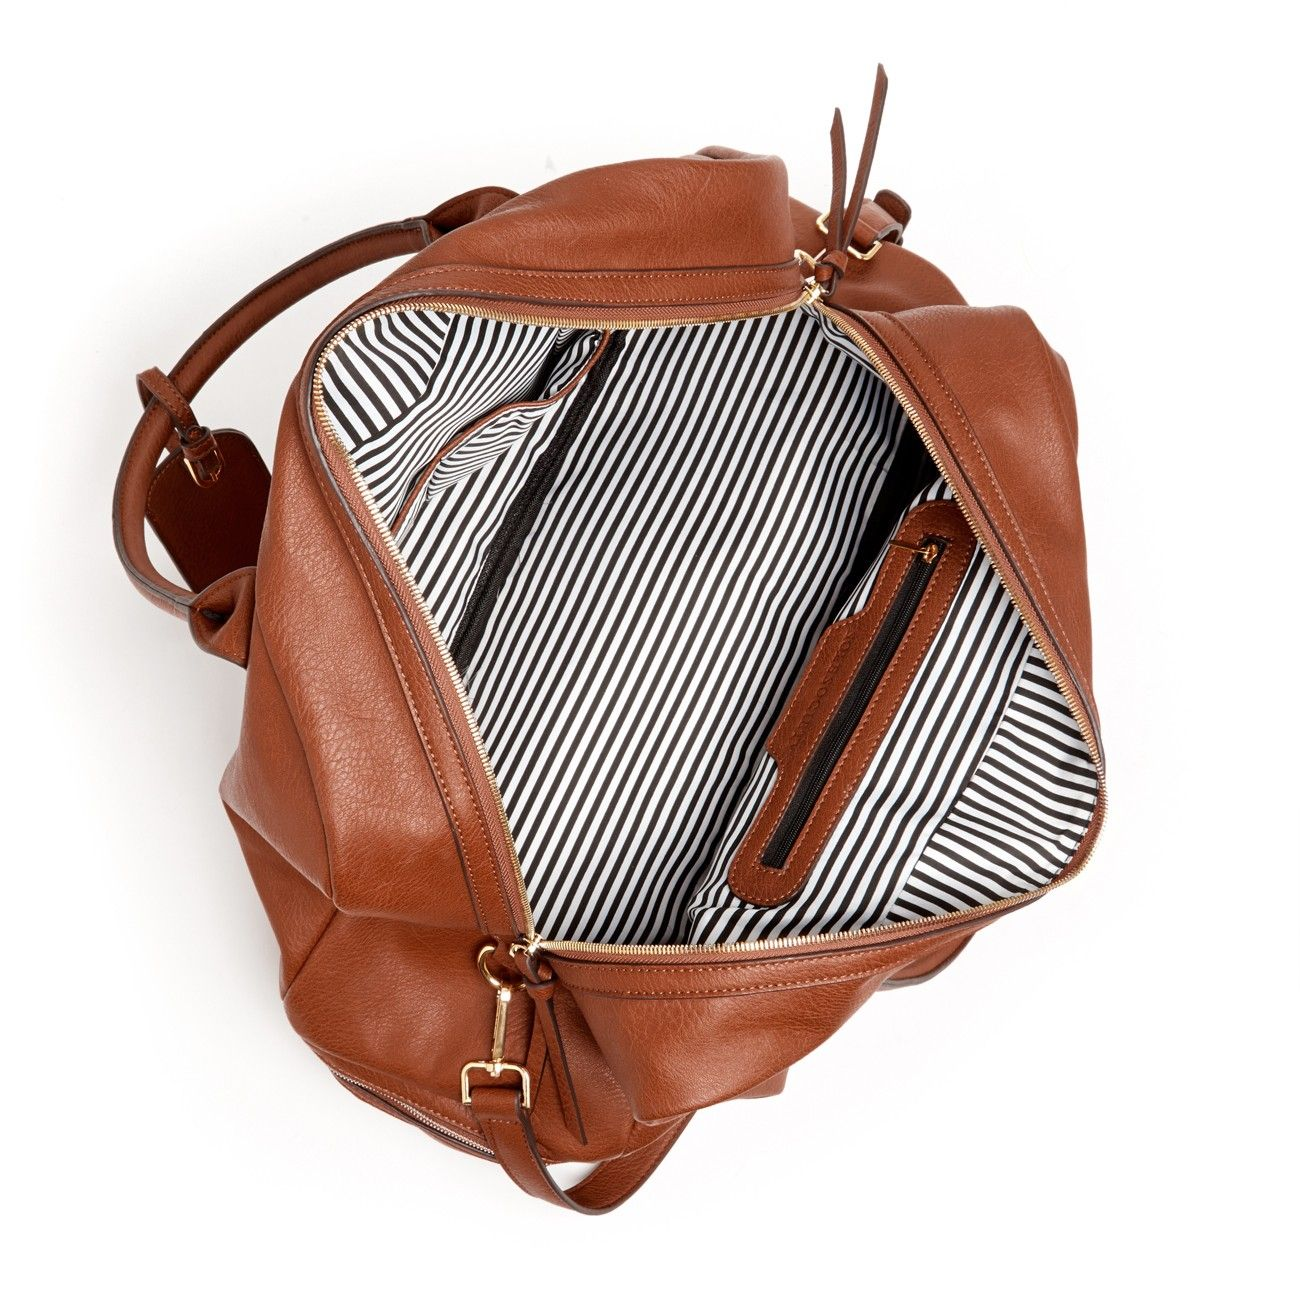 Classic Leather Travel Bag with Stripe Lining - great size, great compartments, and not a bad price either!